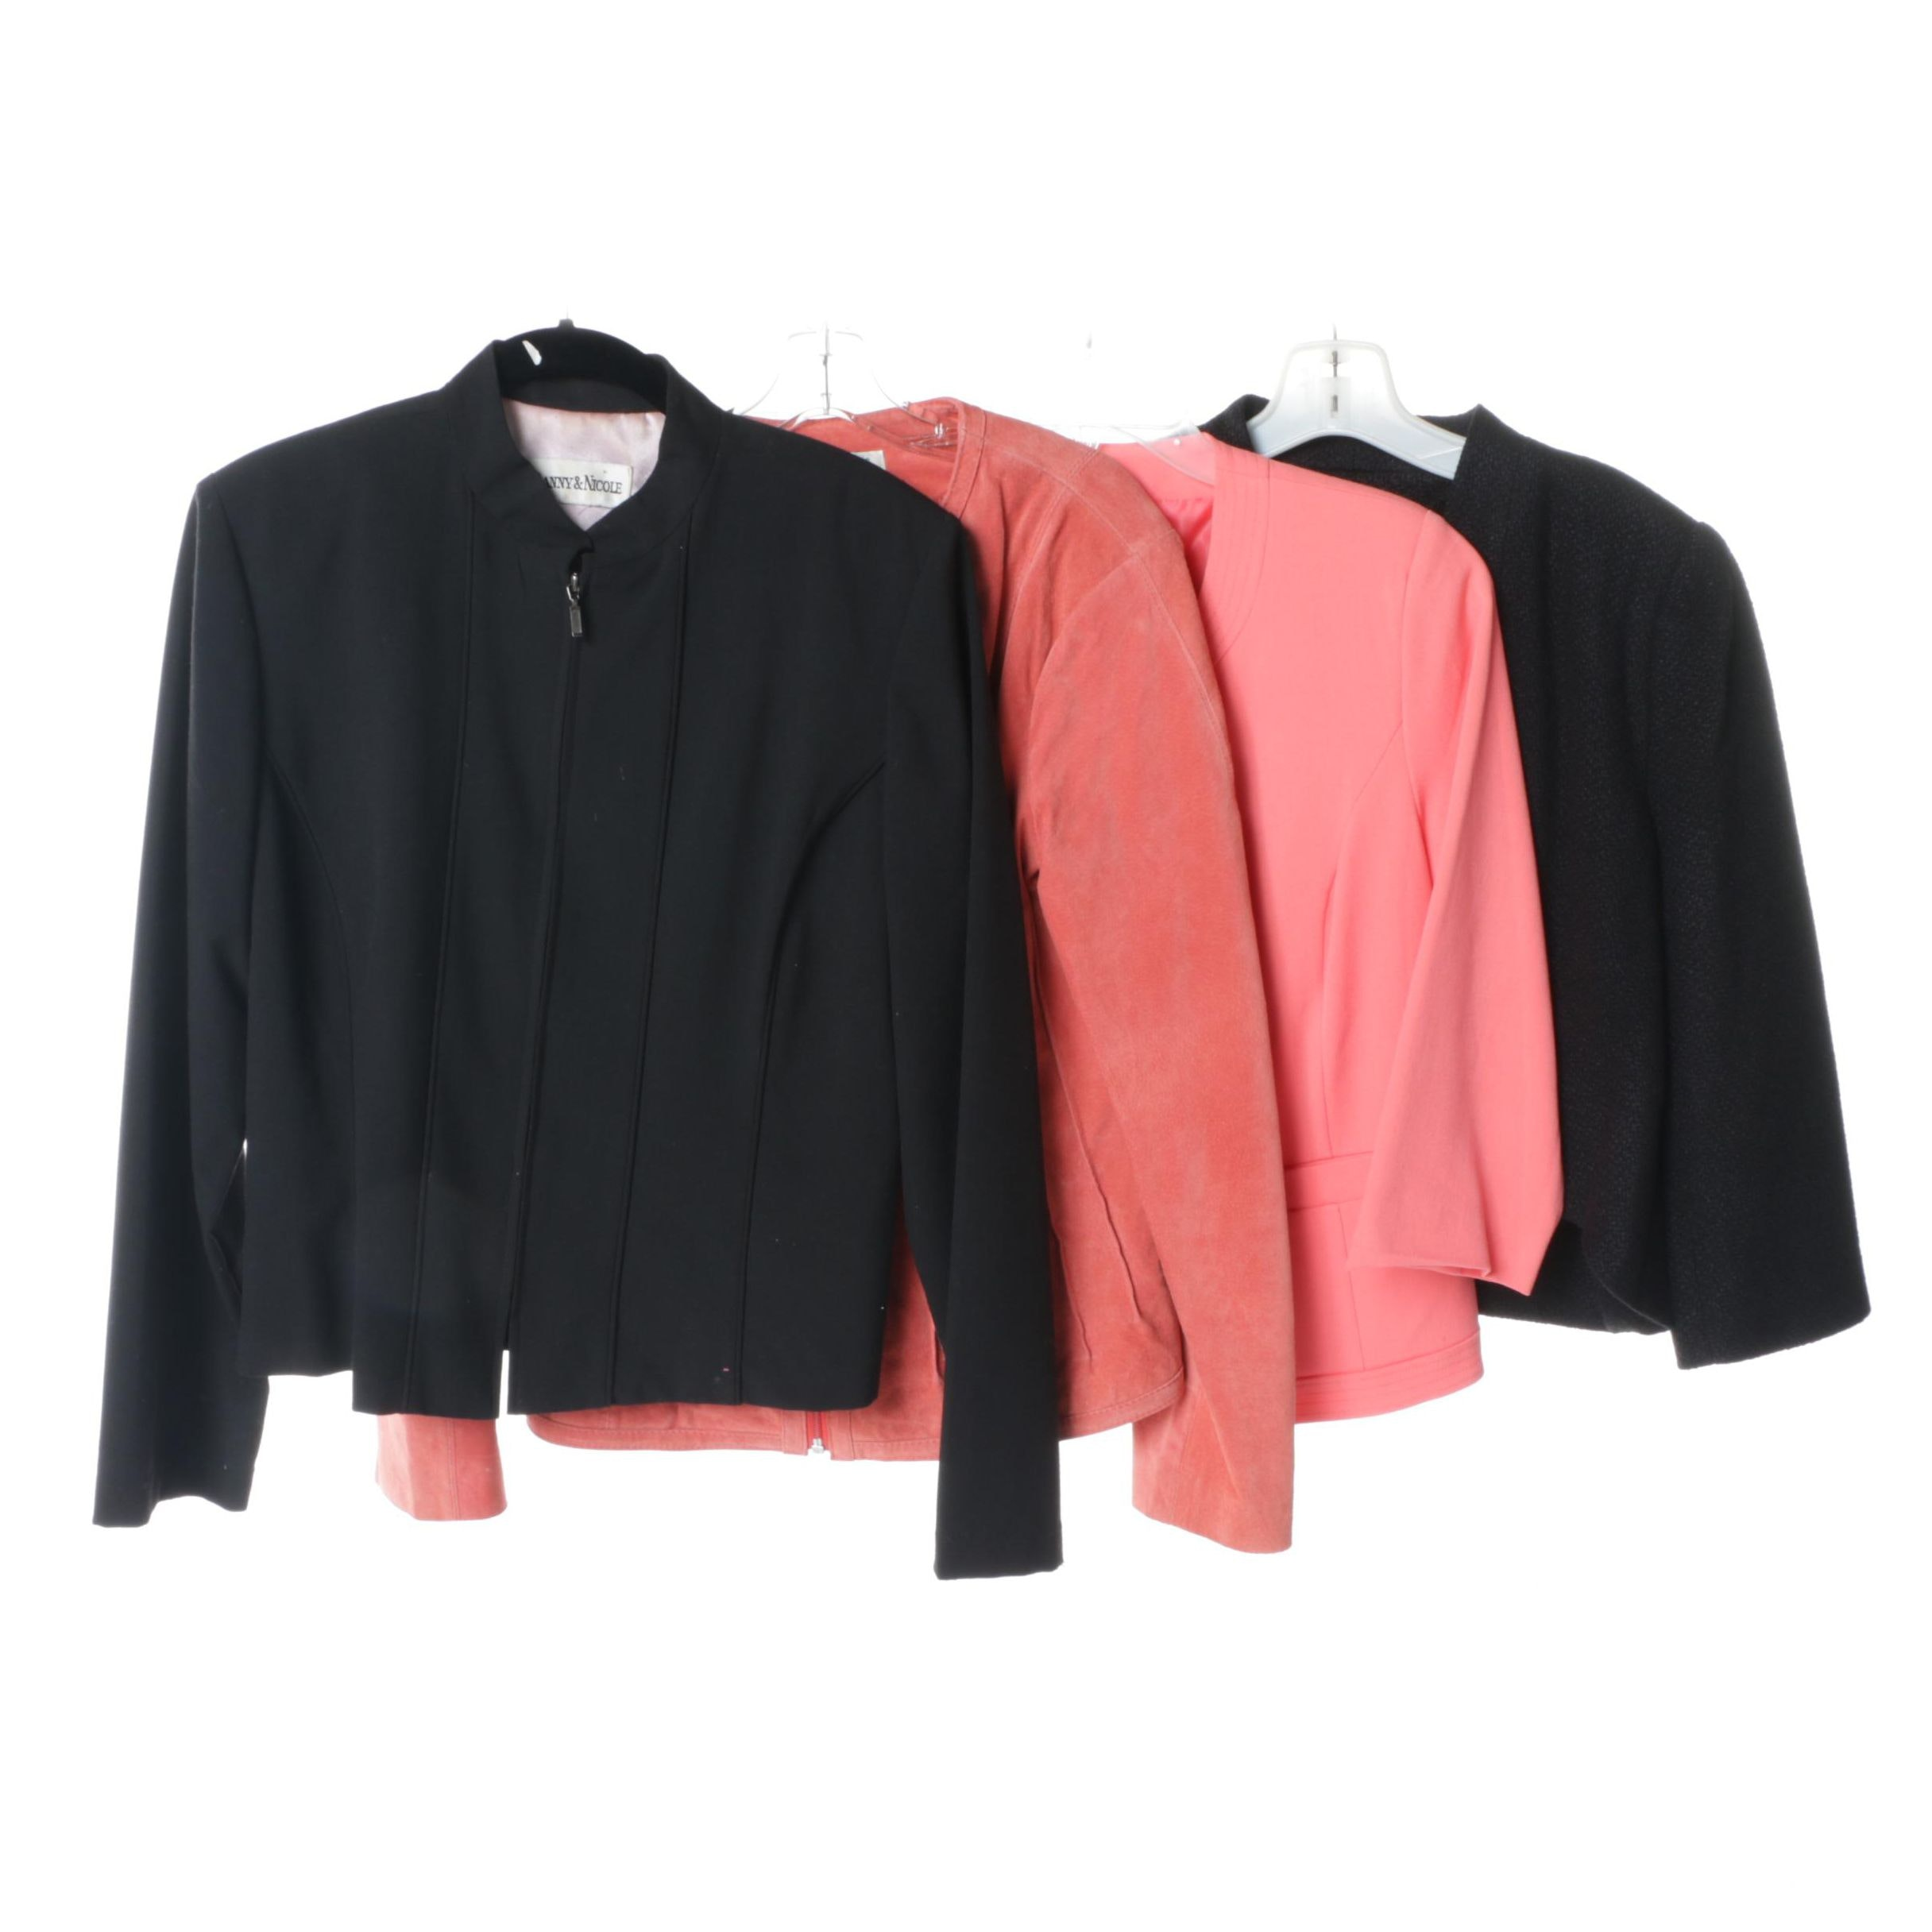 Women's Suit Jackets Including Elle and Russell Kemp